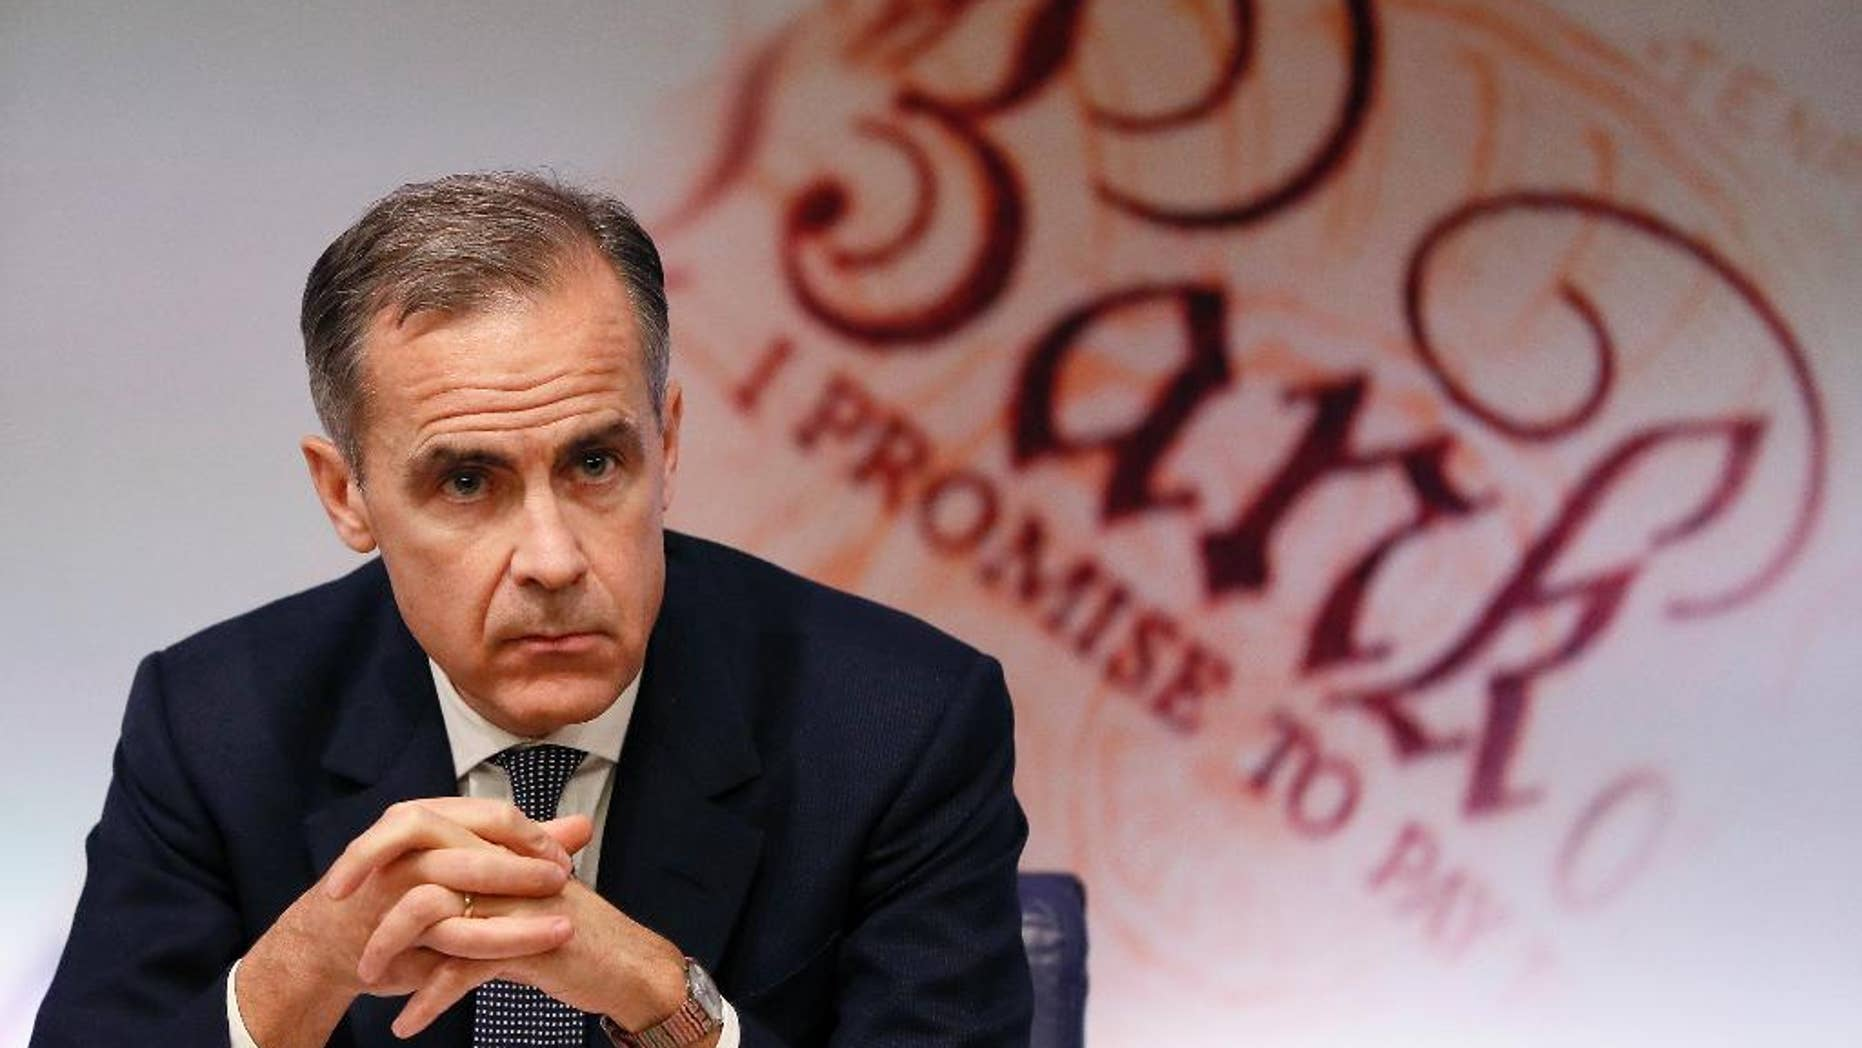 FILE - In this Thursday, Feb. 2, 2017 file photo, Mark Carney, Governor of the Bank of England listens during a quarterly Inflation Report press conference at the bank in London. The Bank of England has kept its key interest rate at a record-low 0.25 percent to avoid slowing economic growth as Britain prepares to leave the European Union. The bank's Monetary Policy Committee voted Thursday, March 16 to keep its key rate on hold for an eighth straight month, a day after the U.S. Federal Reserve raised its benchmark rate. (AP Photo/Kirsty Wigglesworth, file)